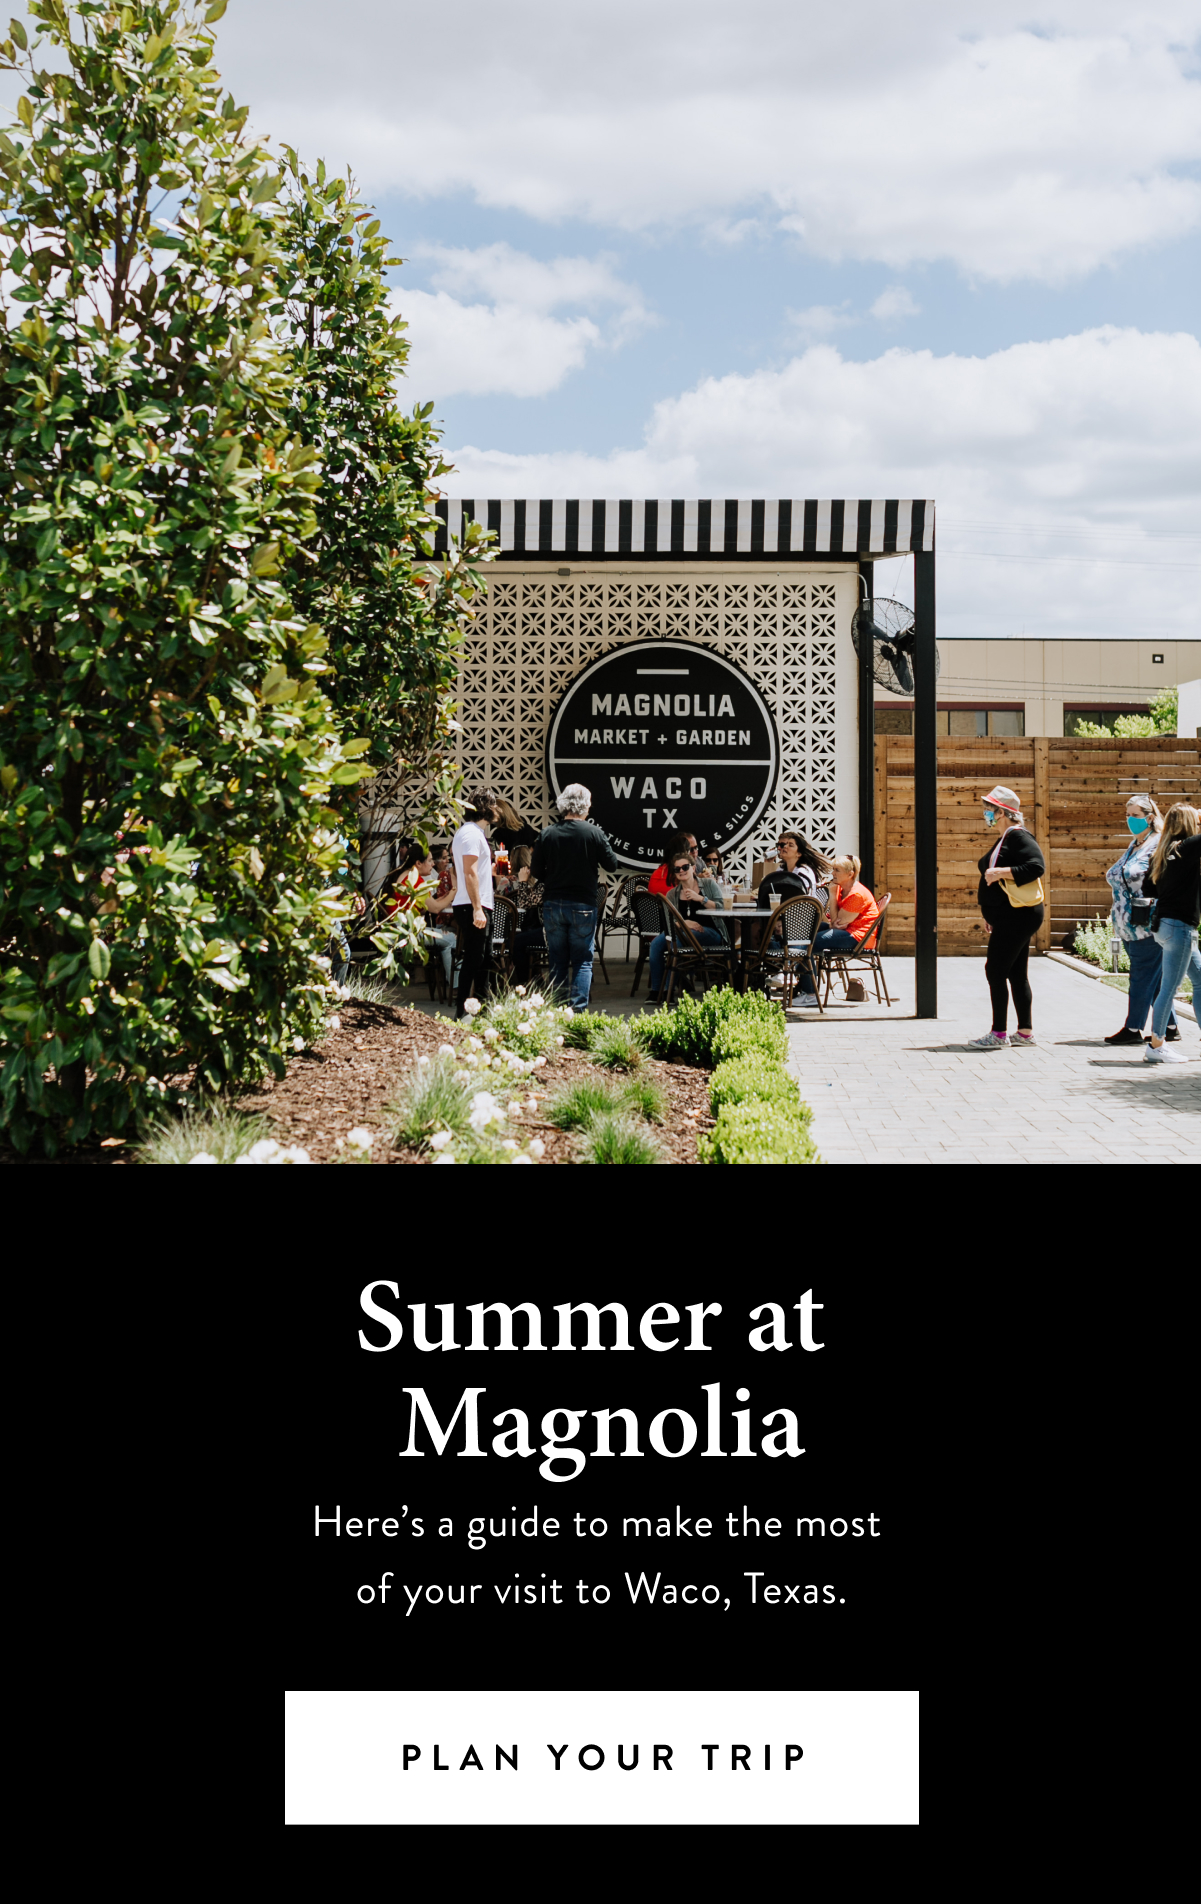 Summer at Magnolia. Here's a guide to make the most out of your visit to Waco, Texas.